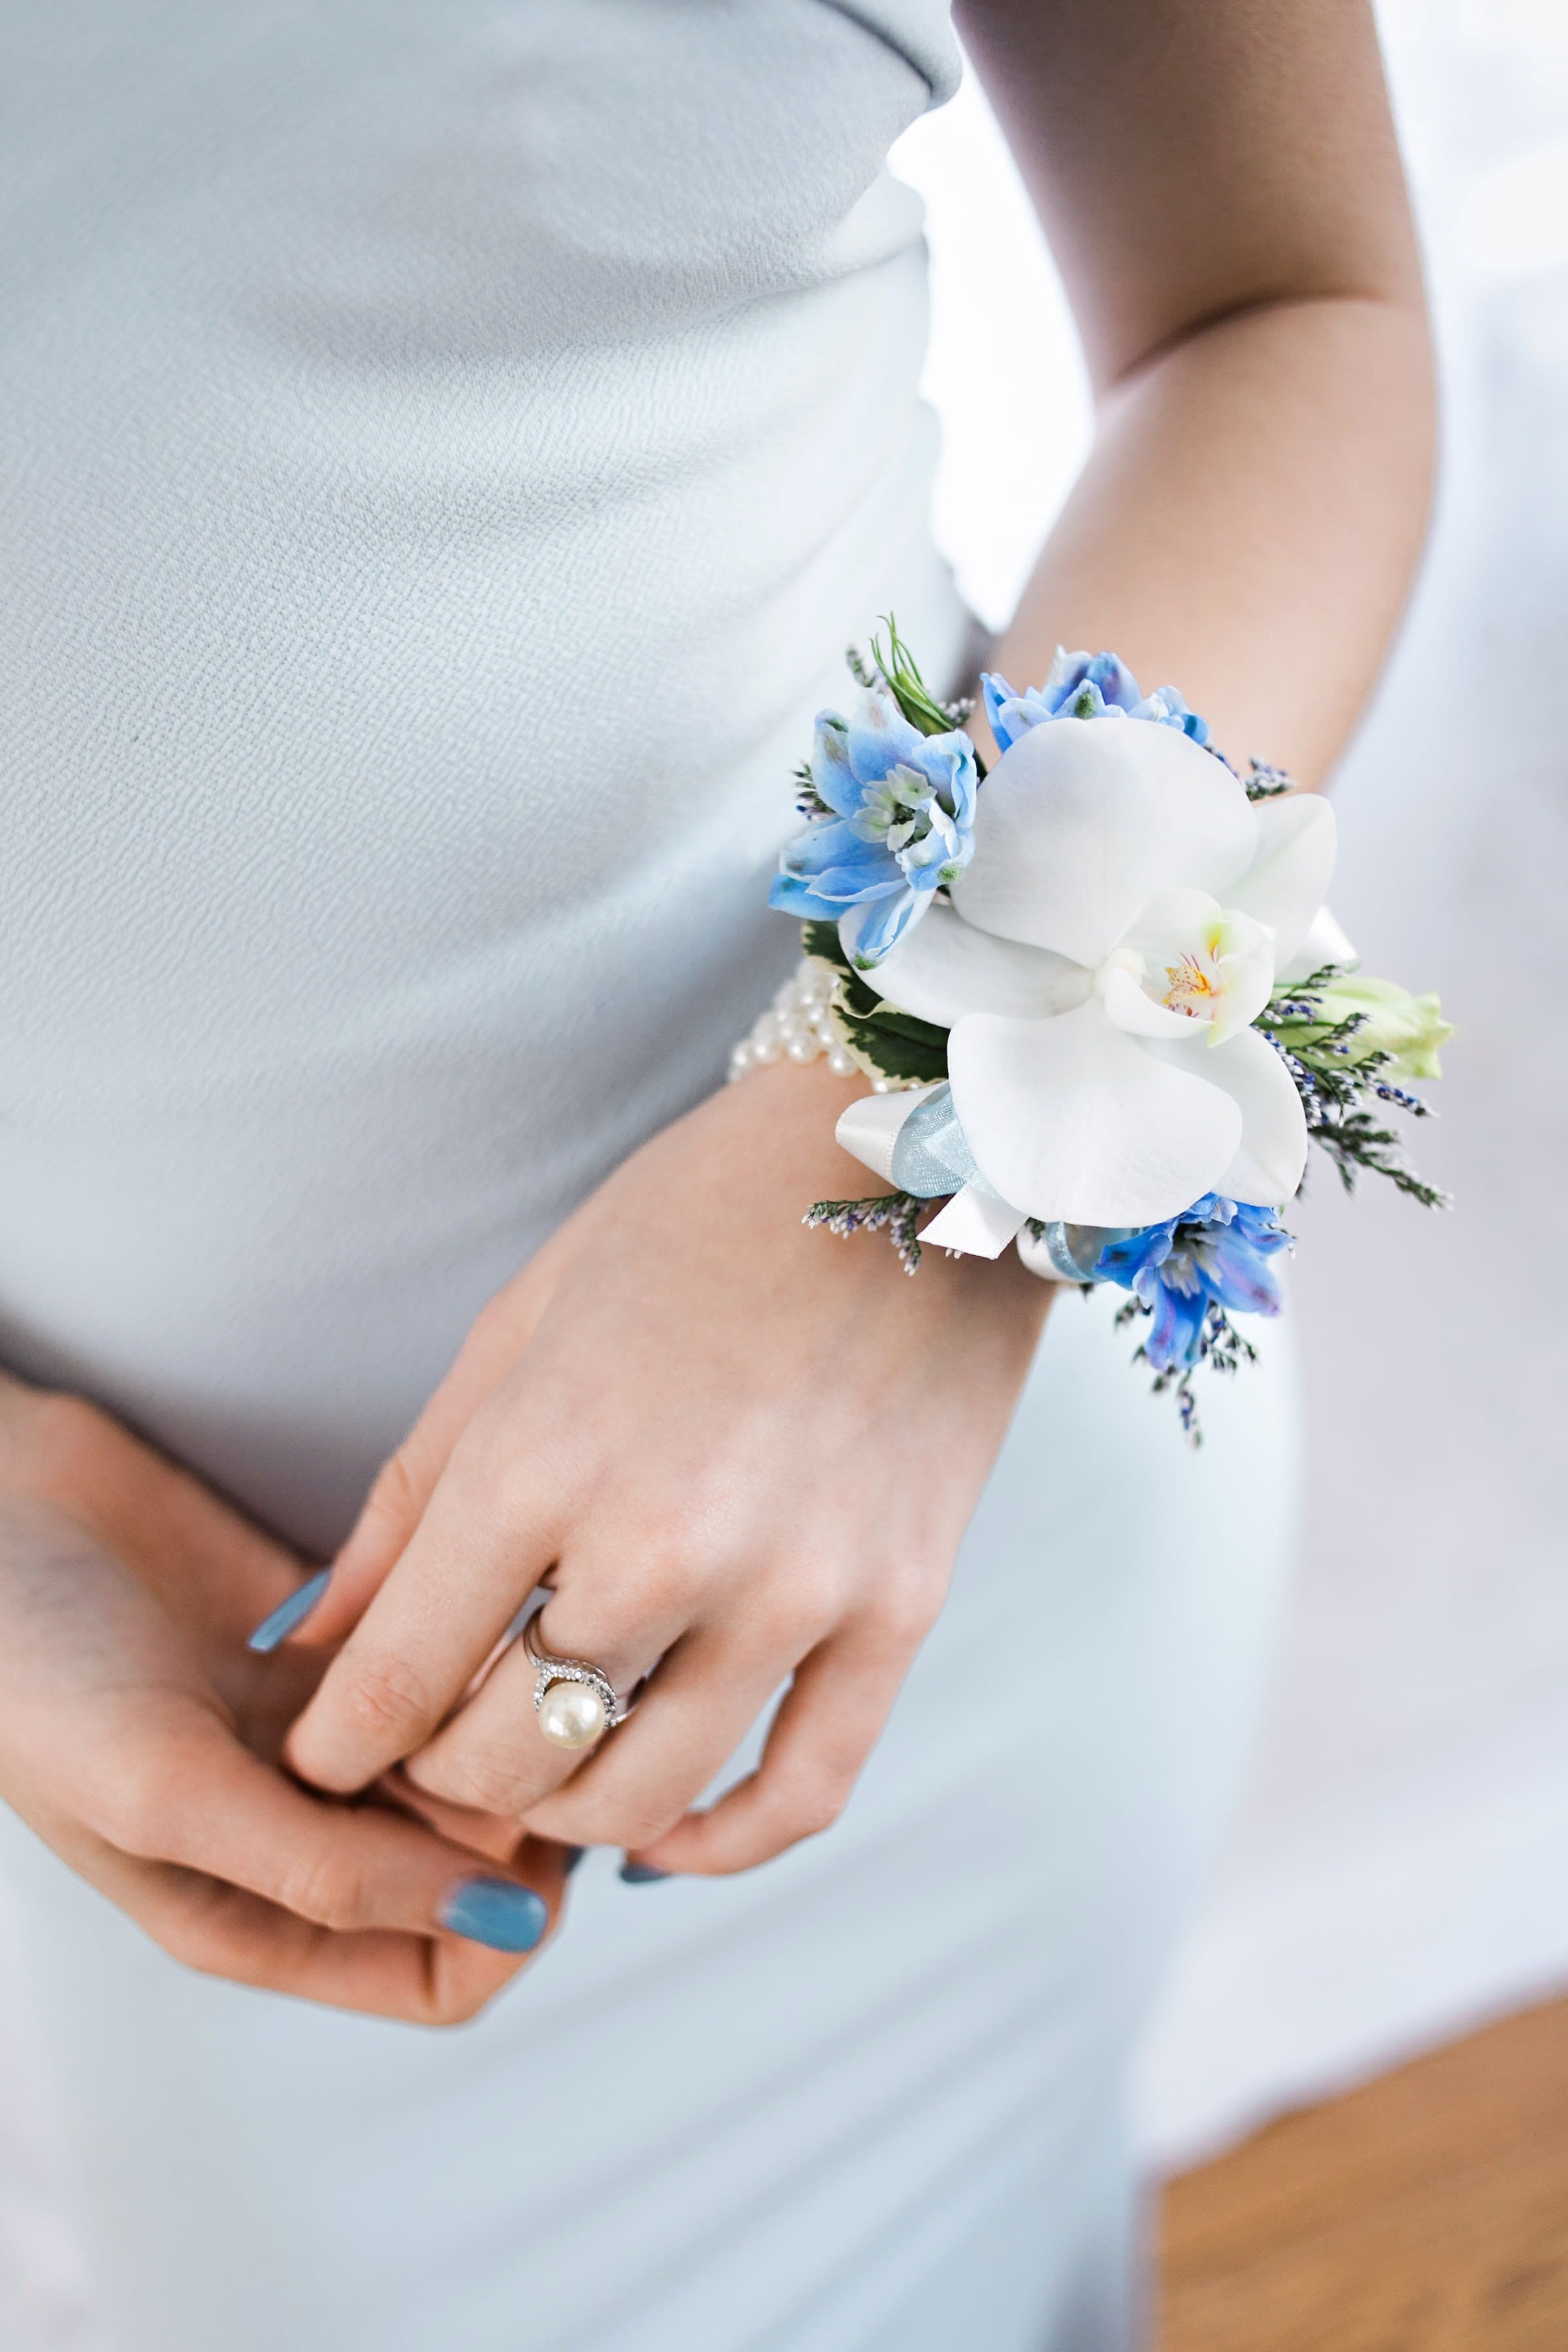 White orchid and blue delphinium corsage on a pearl